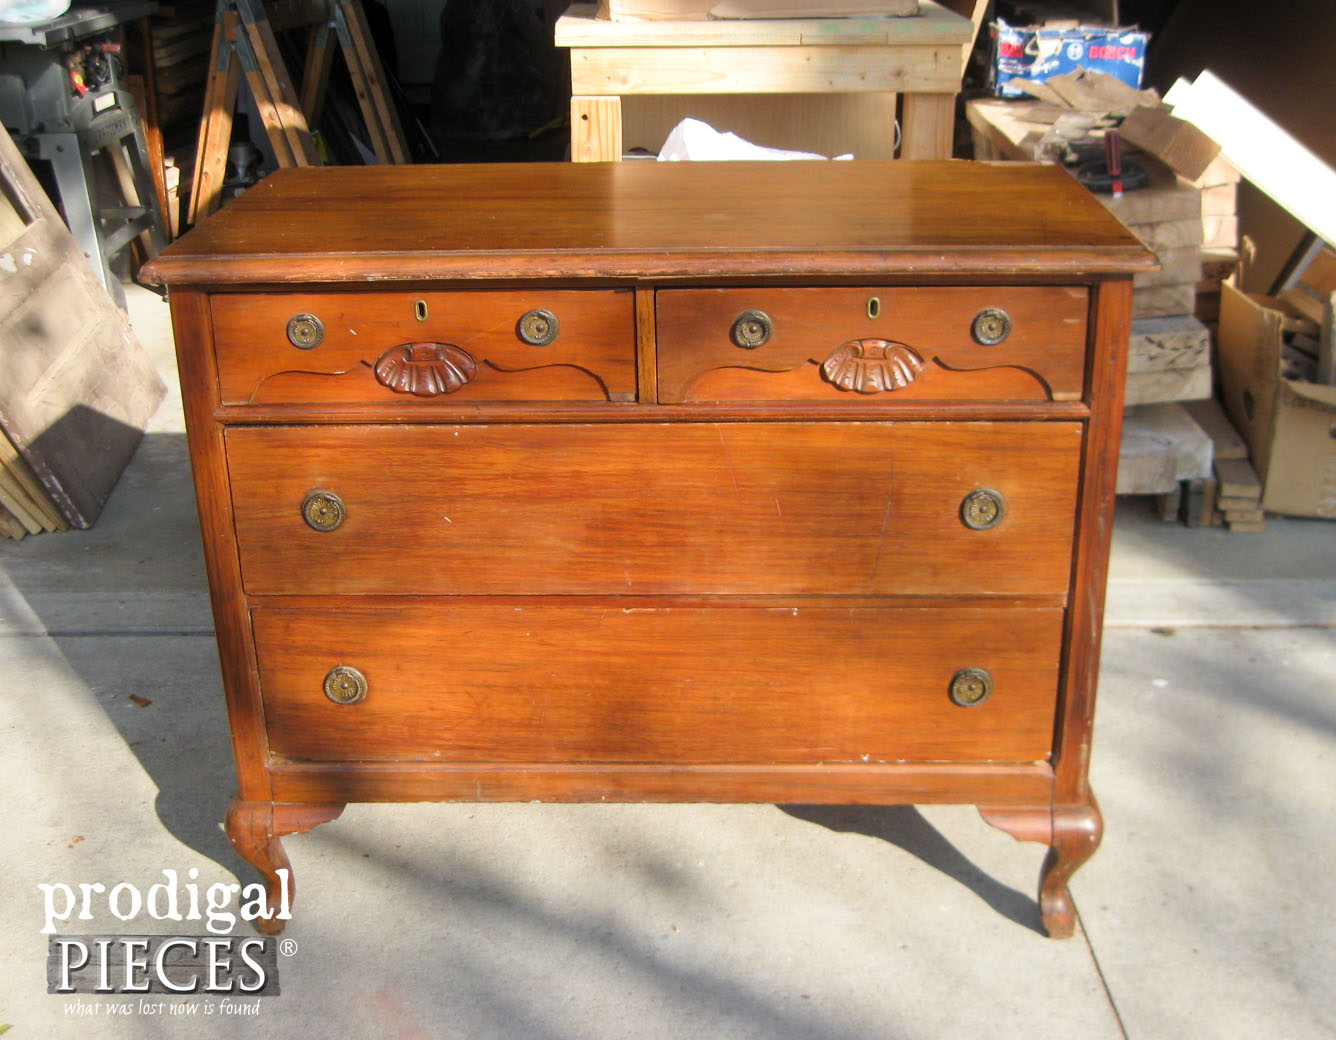 Queen Anne Dresser Before Makeover by Prodigal Pieces | www.prodigalpieces.com